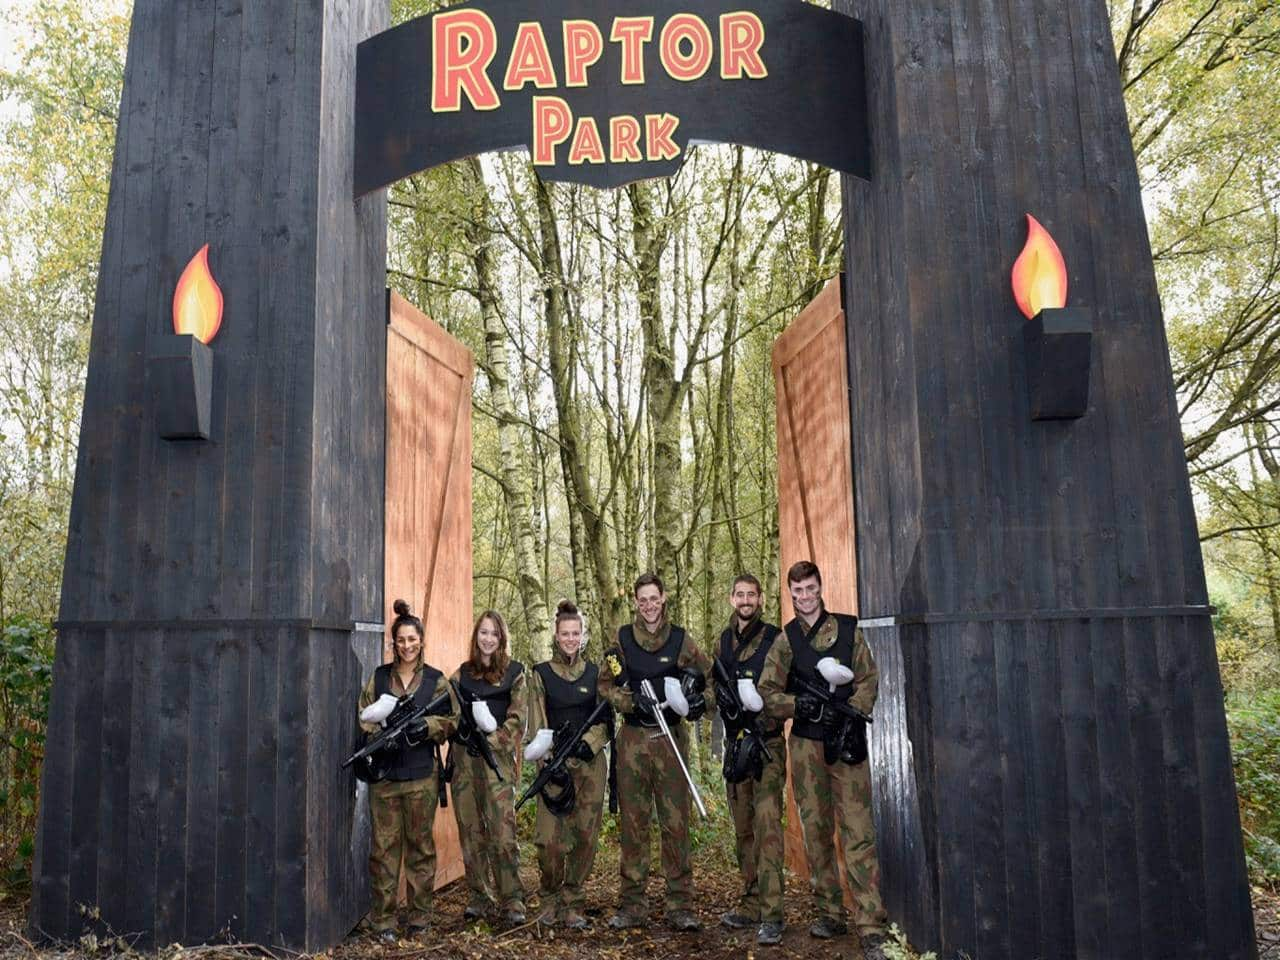 Delta Force Players Stood By Raptor Park Entrance